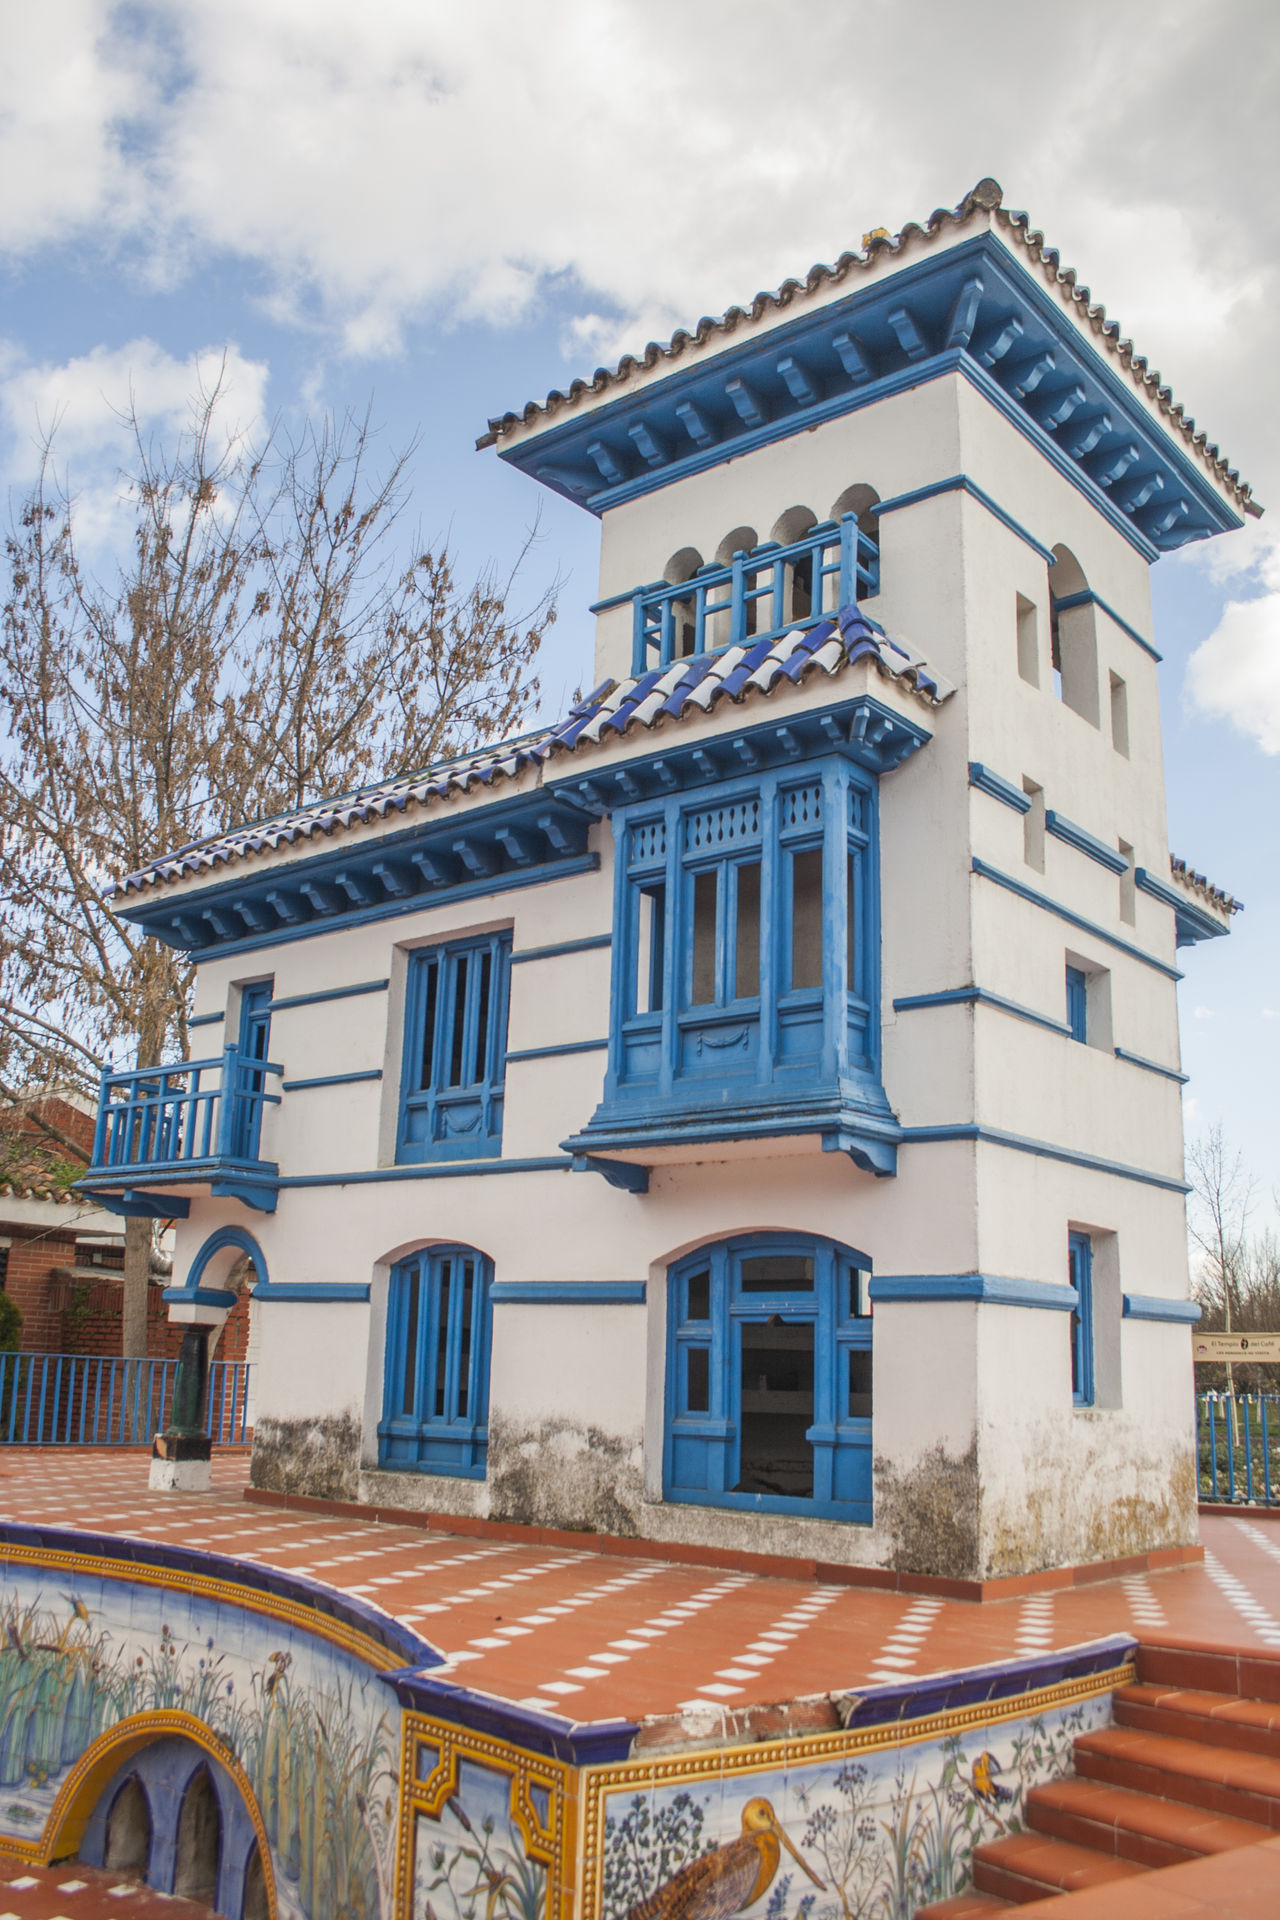 Architecture Balcony Building Exterior Built Structure Ceramic Ceramic Art Ceramic Tiles Ceramics Day España Home No People Outdoors Sky SPAIN Talavera Talavera De La Reina Talavera Pottery Toledo Toledo Spain Tree